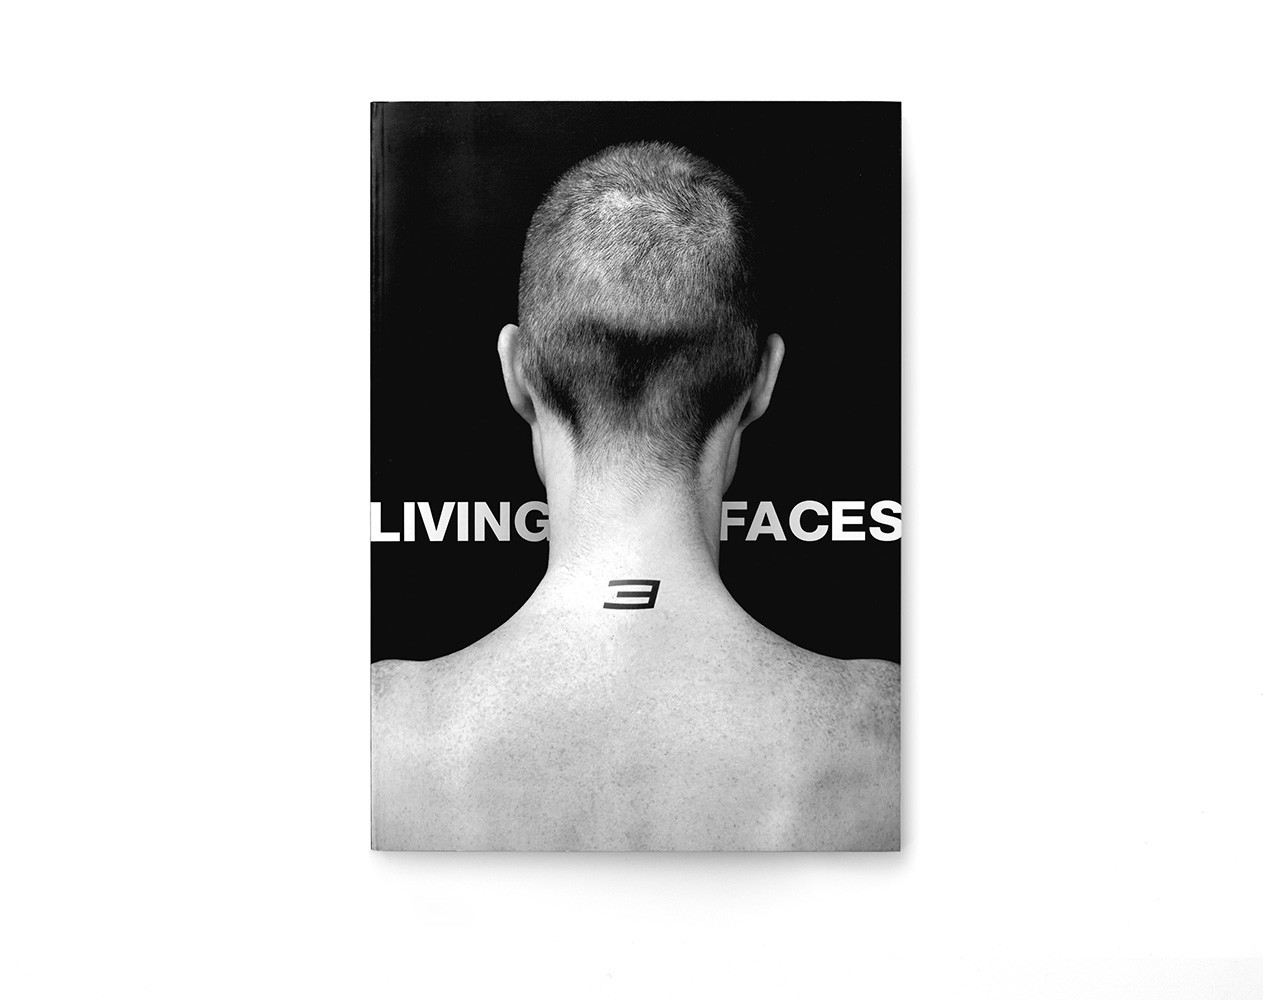 10_Living Faces (Playstation)